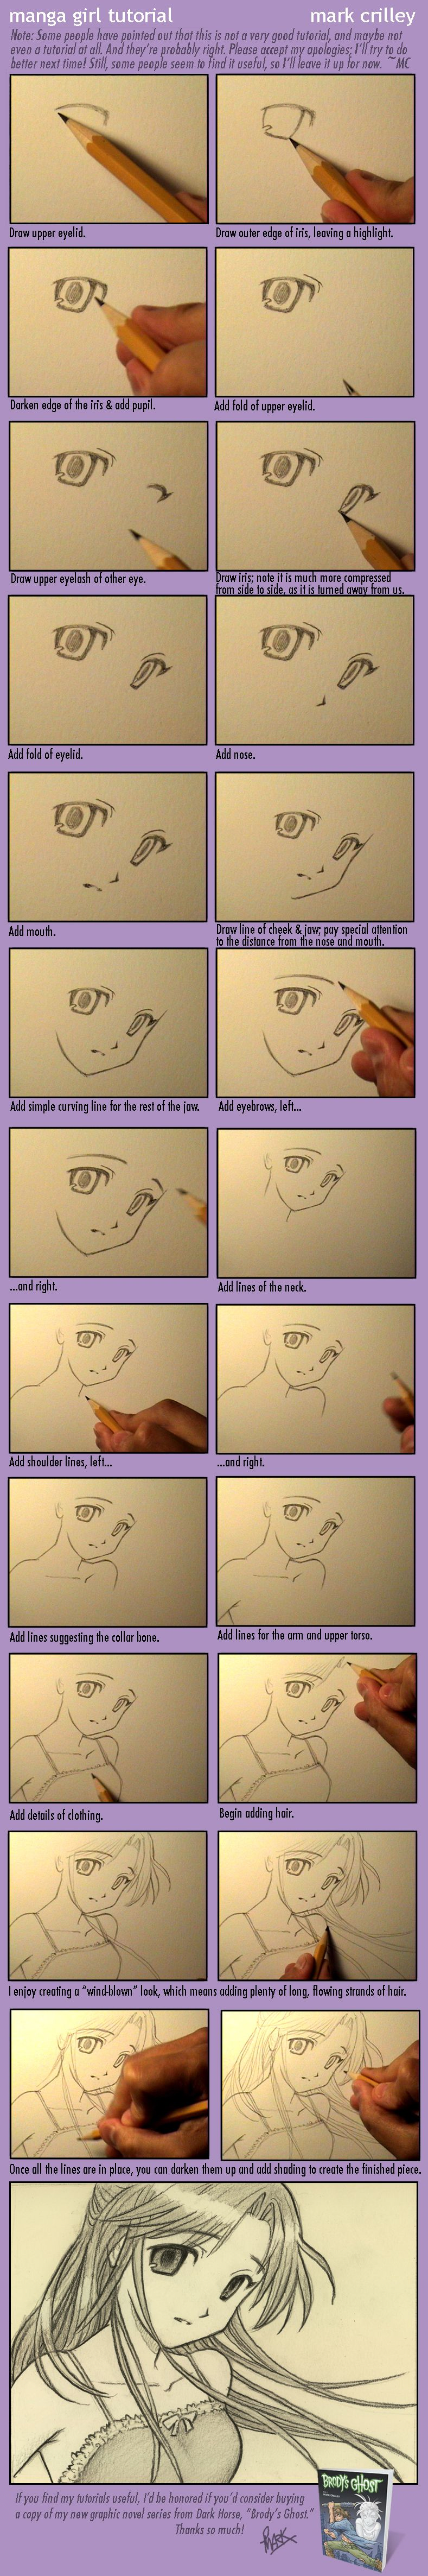 Manga Girl Tutorial by markcrilley.deviantart.com on @deviantART